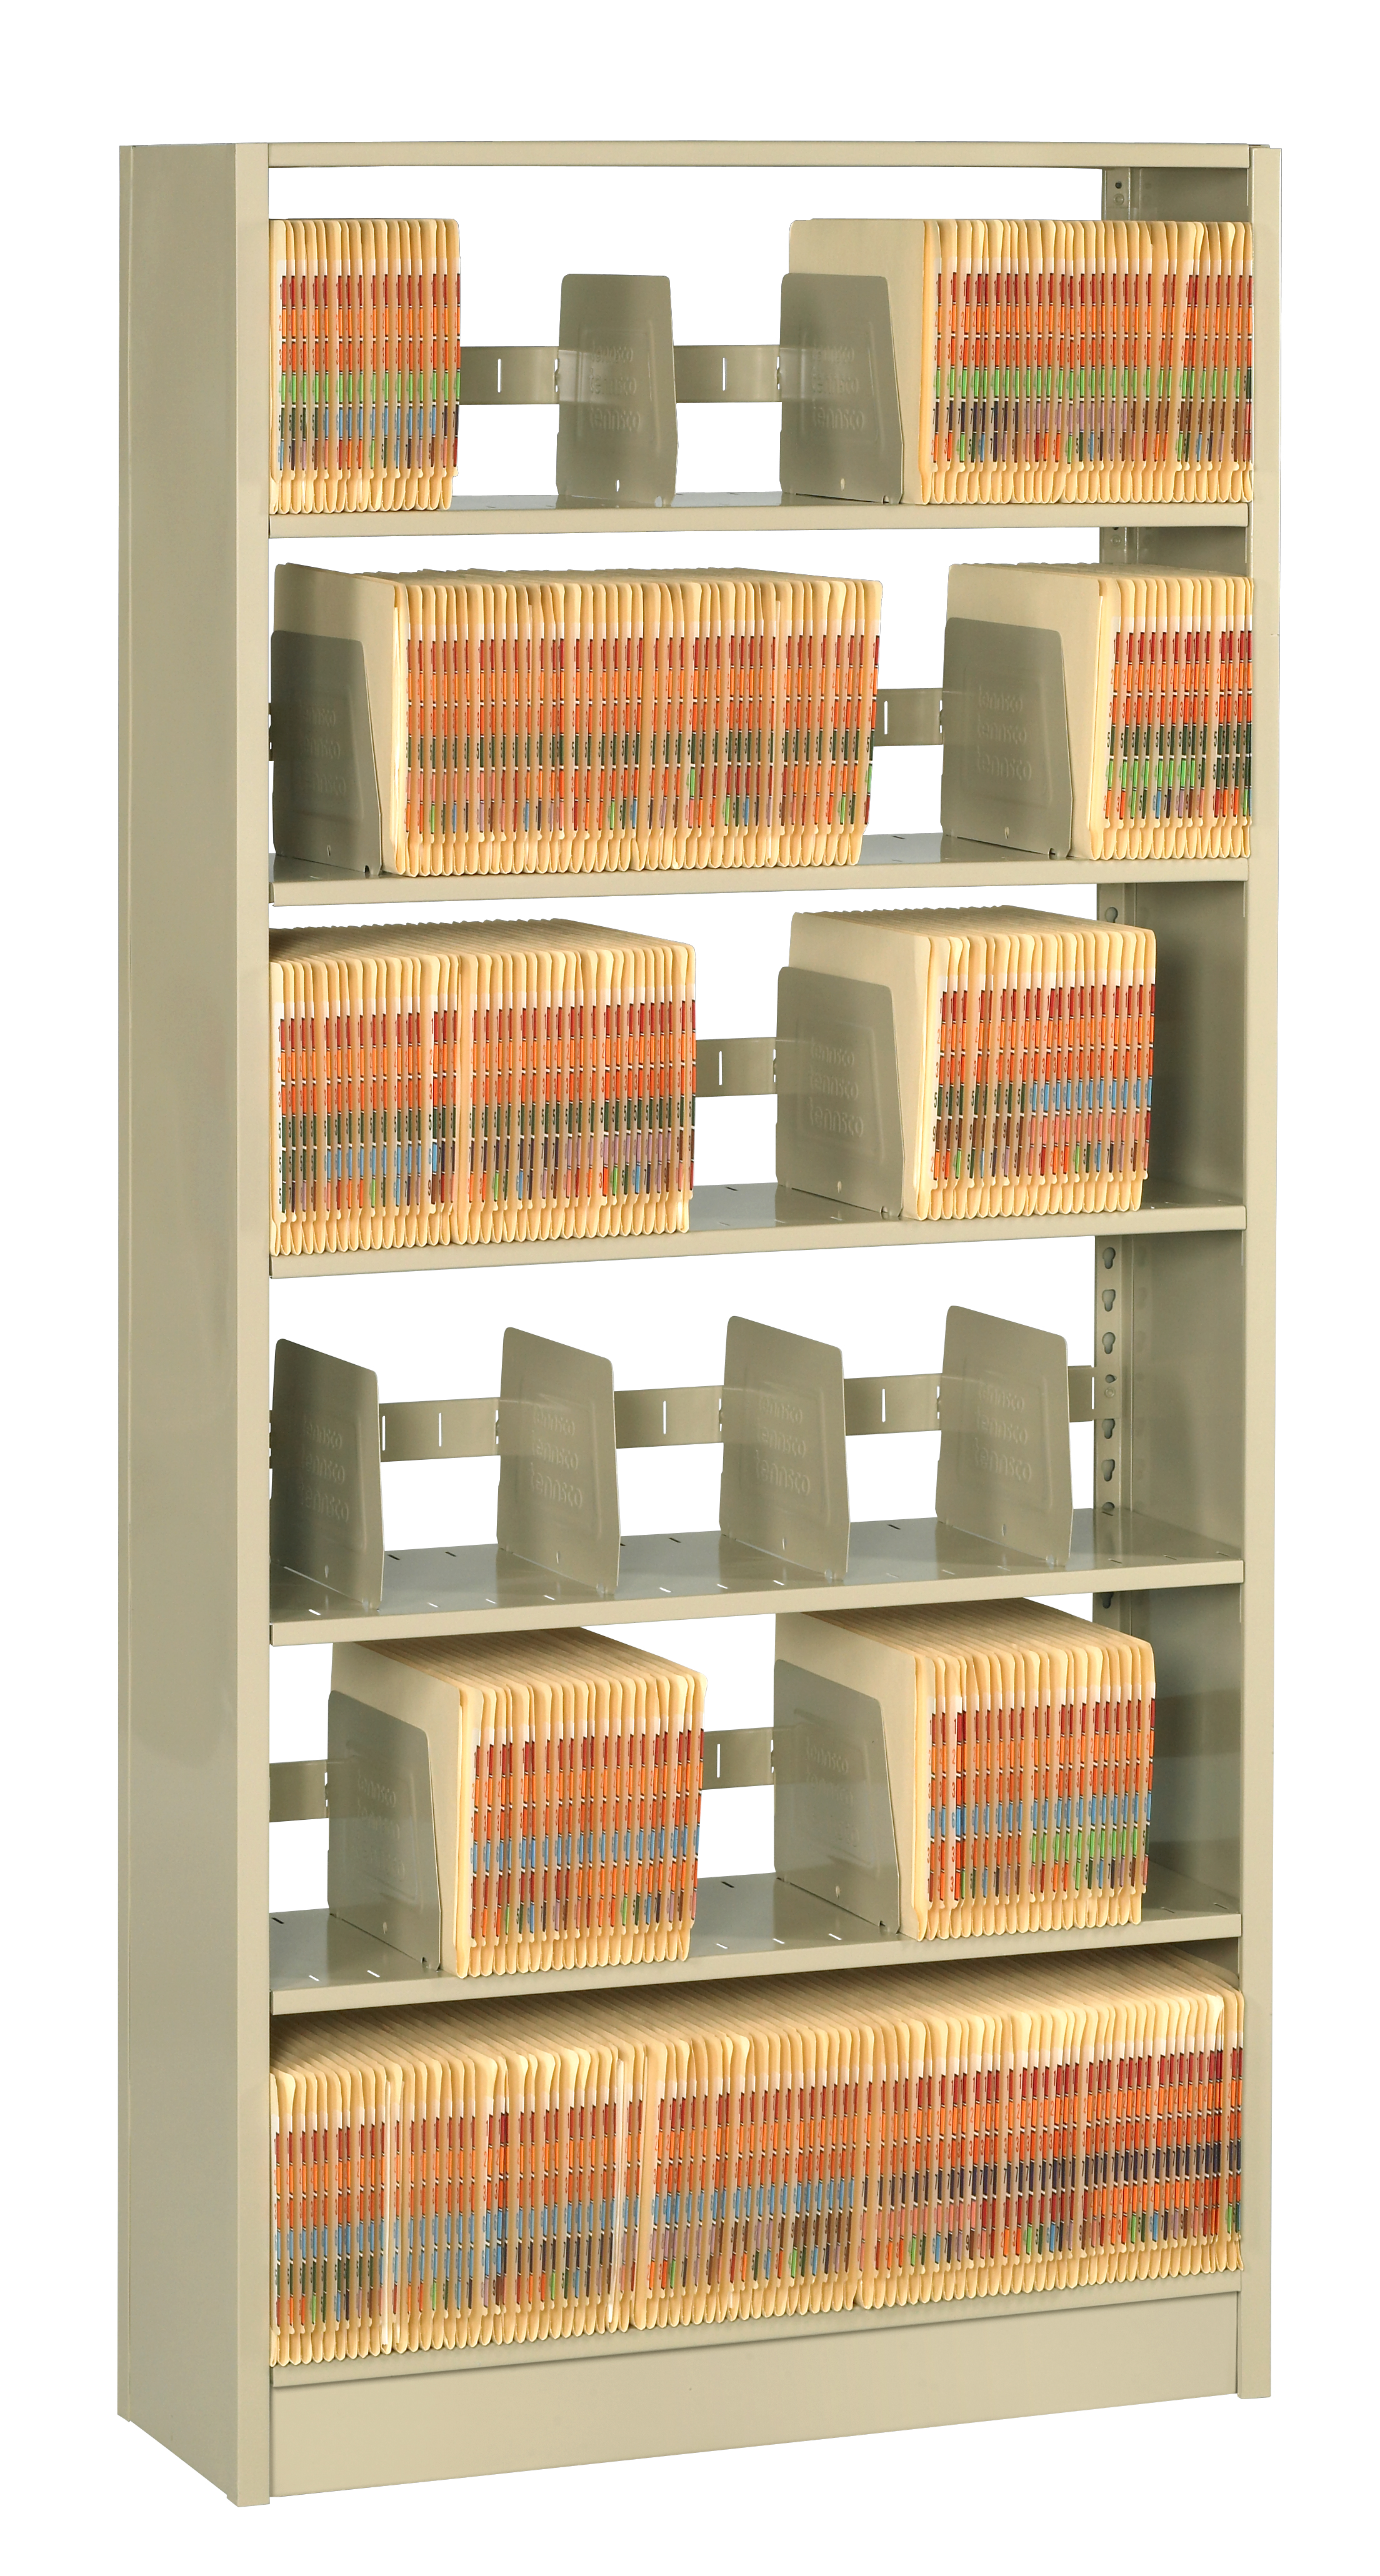 L&T Boltless Shelving 76 Inch High Starter Unit Single Entry